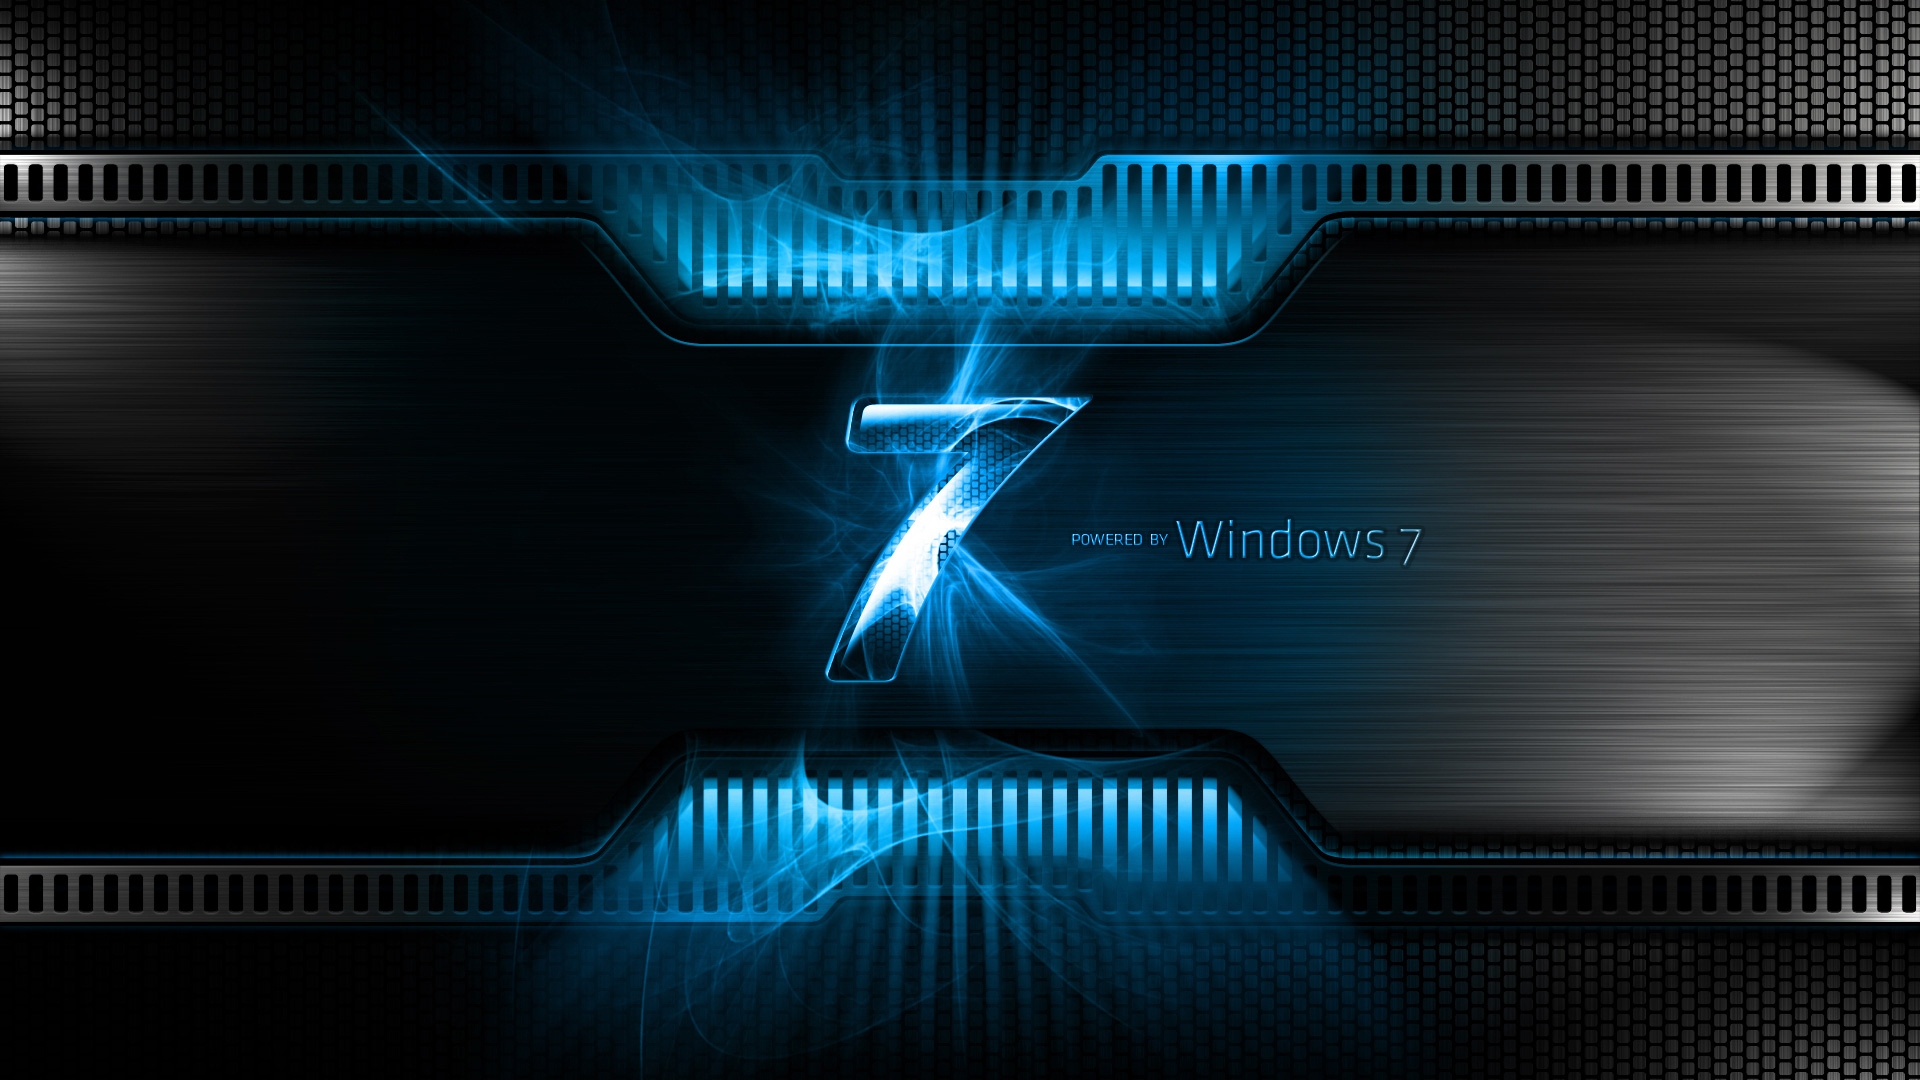 Windows 7 Ultimate   28 Excellent Computer Background Images 1920x1080